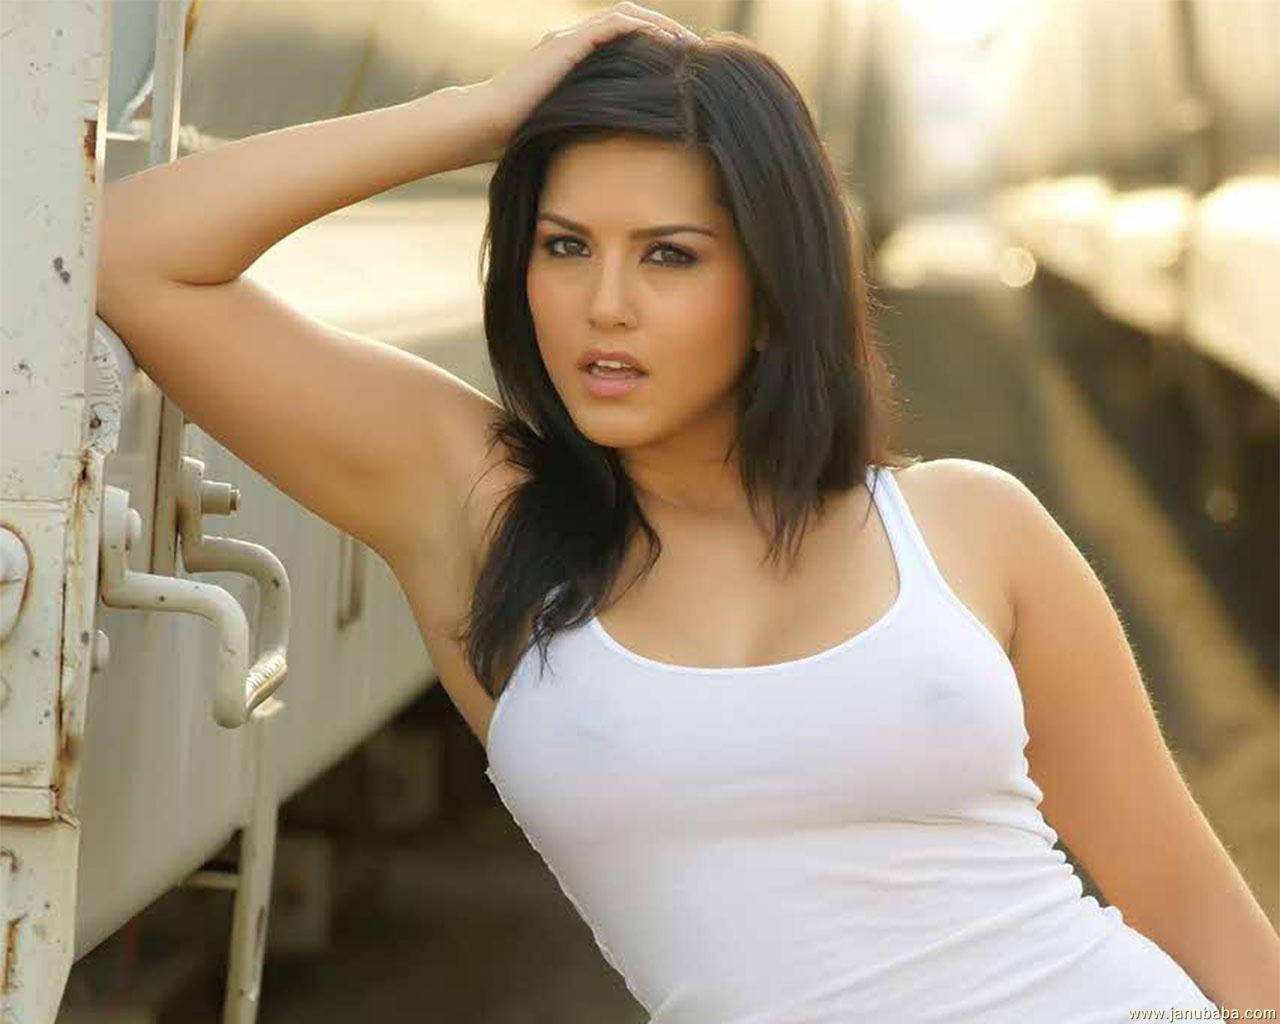 Hd Wallpapers Of Sunny Leone Hot Picture Gallery-2225